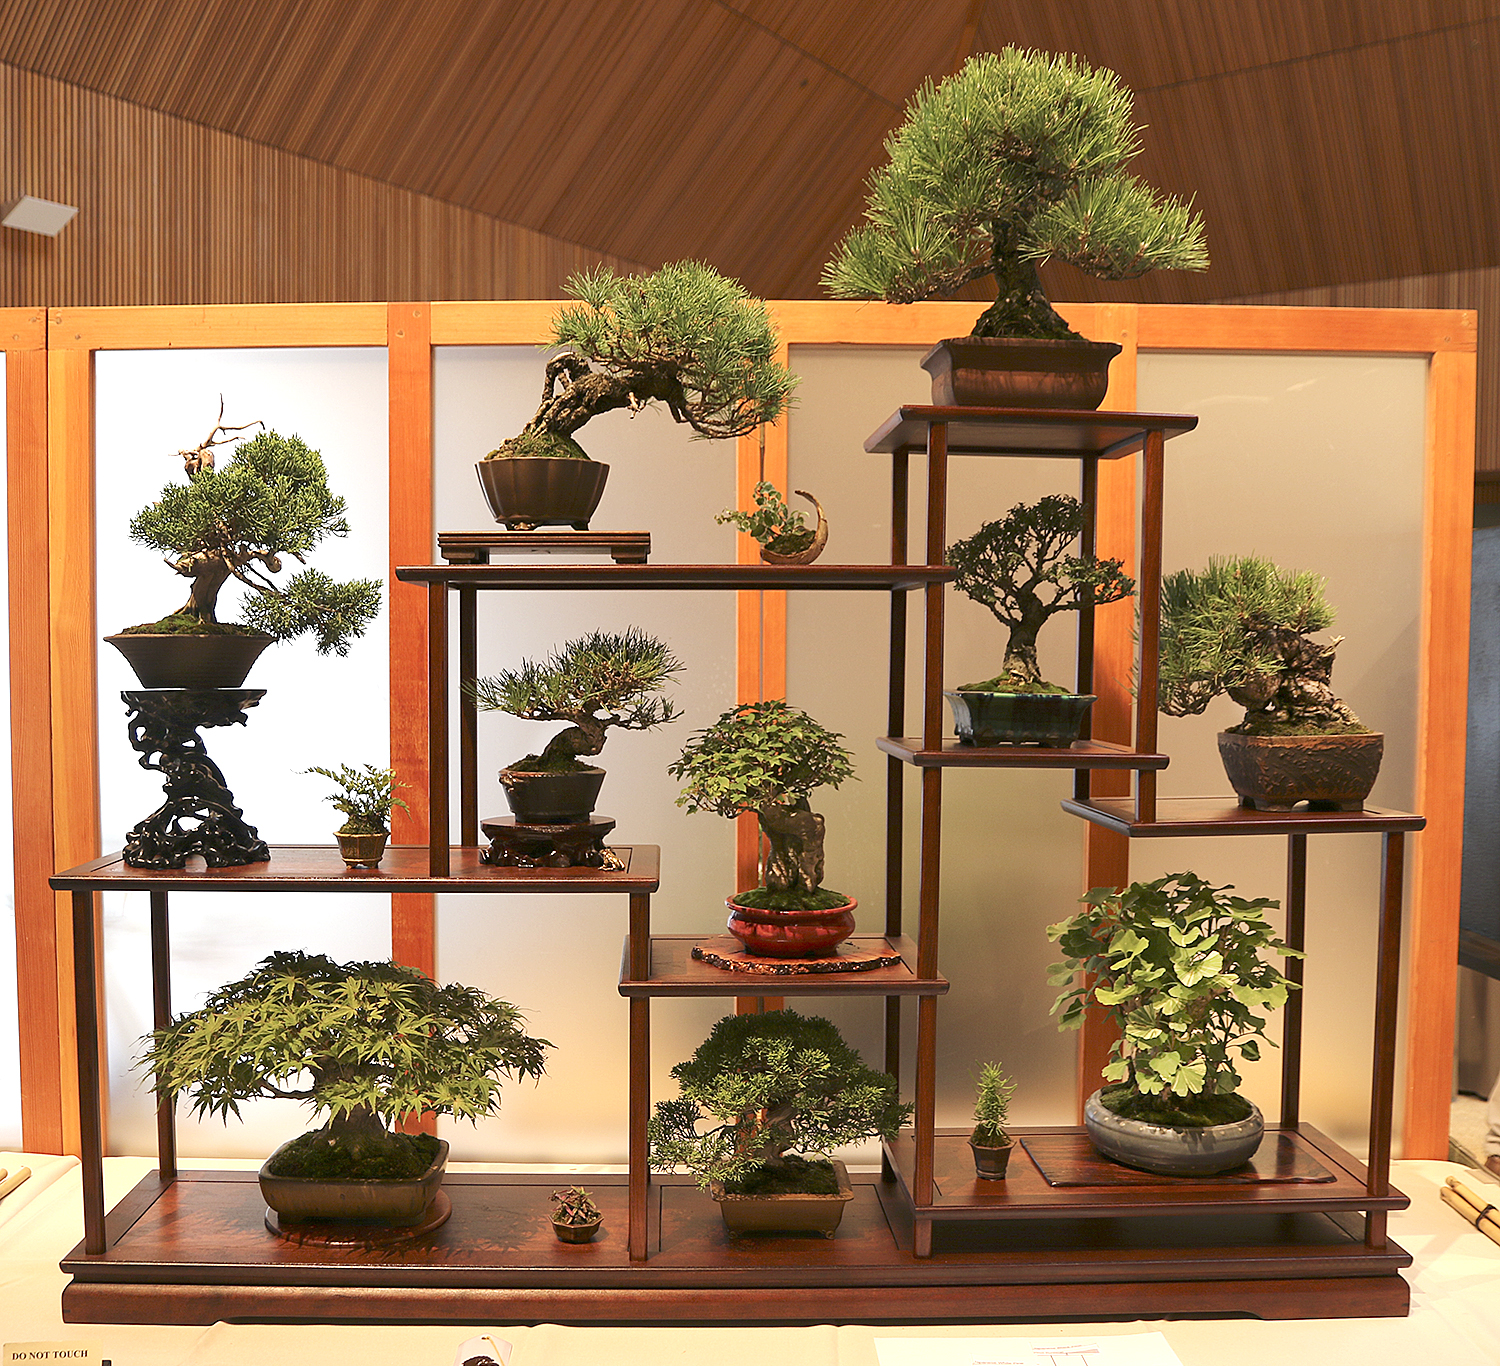 As Usual The Chicago Botanic Displayed Several Of Their Bonsai In Two  Courtyards On Unusual Display Tables With Backgrounds And Lighting.